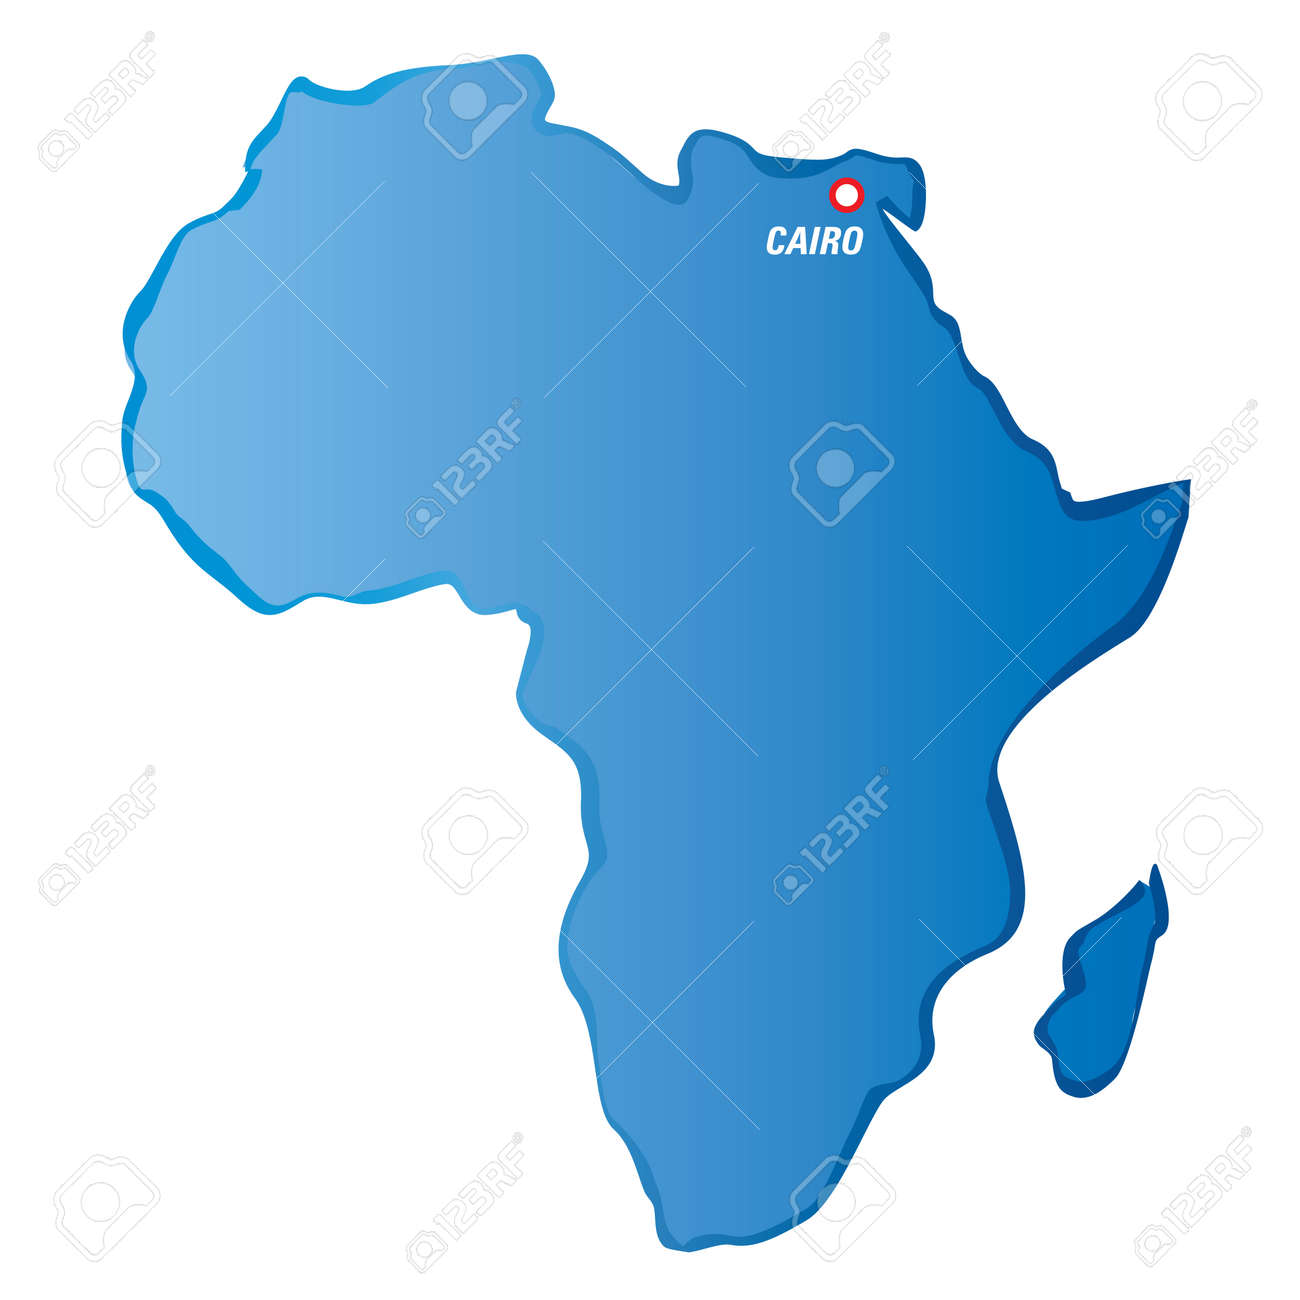 Blue Map Of Africa And Cairo. Royalty Free Cliparts, Vectors, And